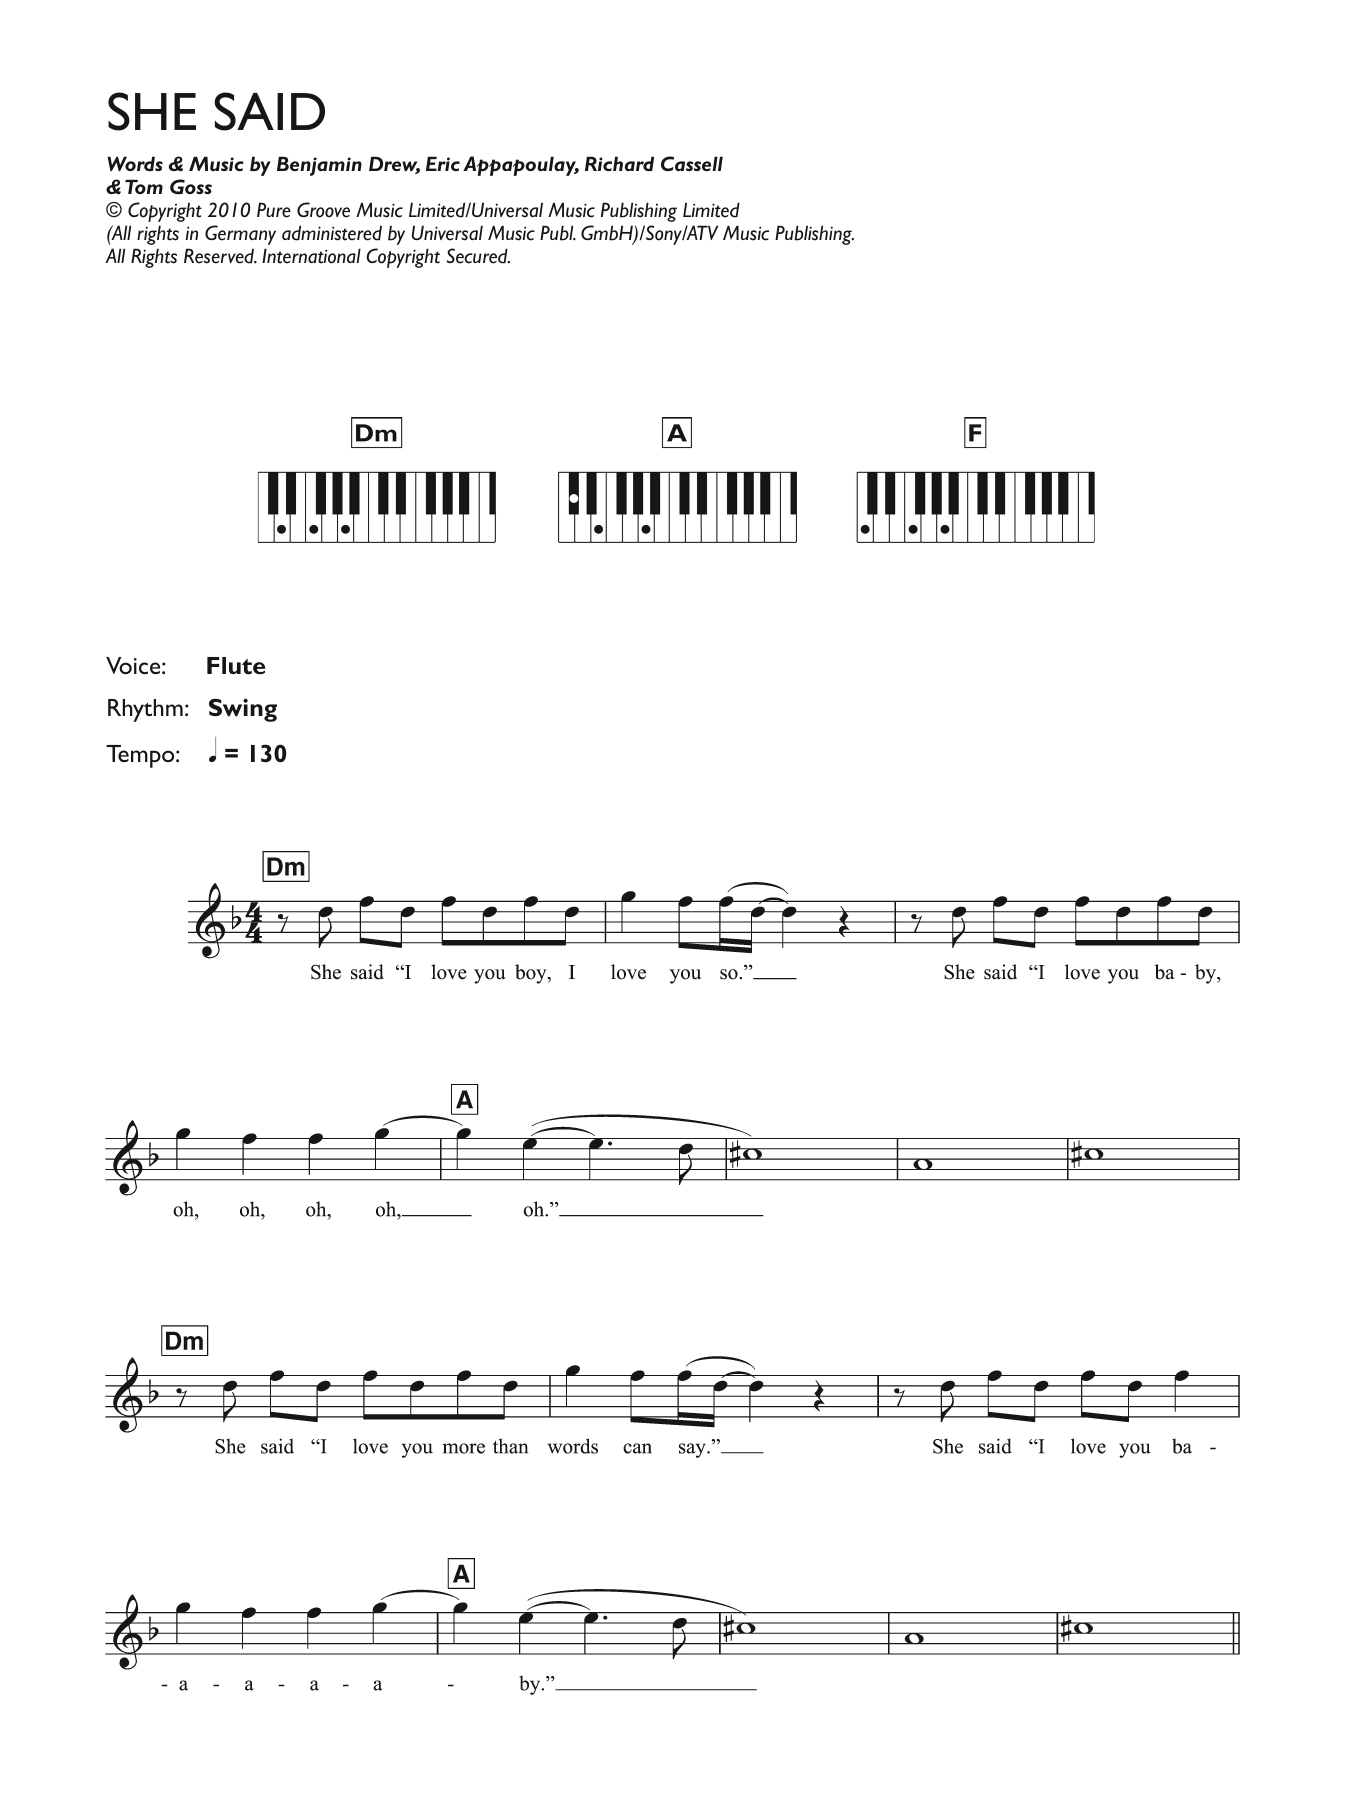 Piano chord hip hop music sheet music at stantons sheet music featured artist plan b she said hexwebz Choice Image